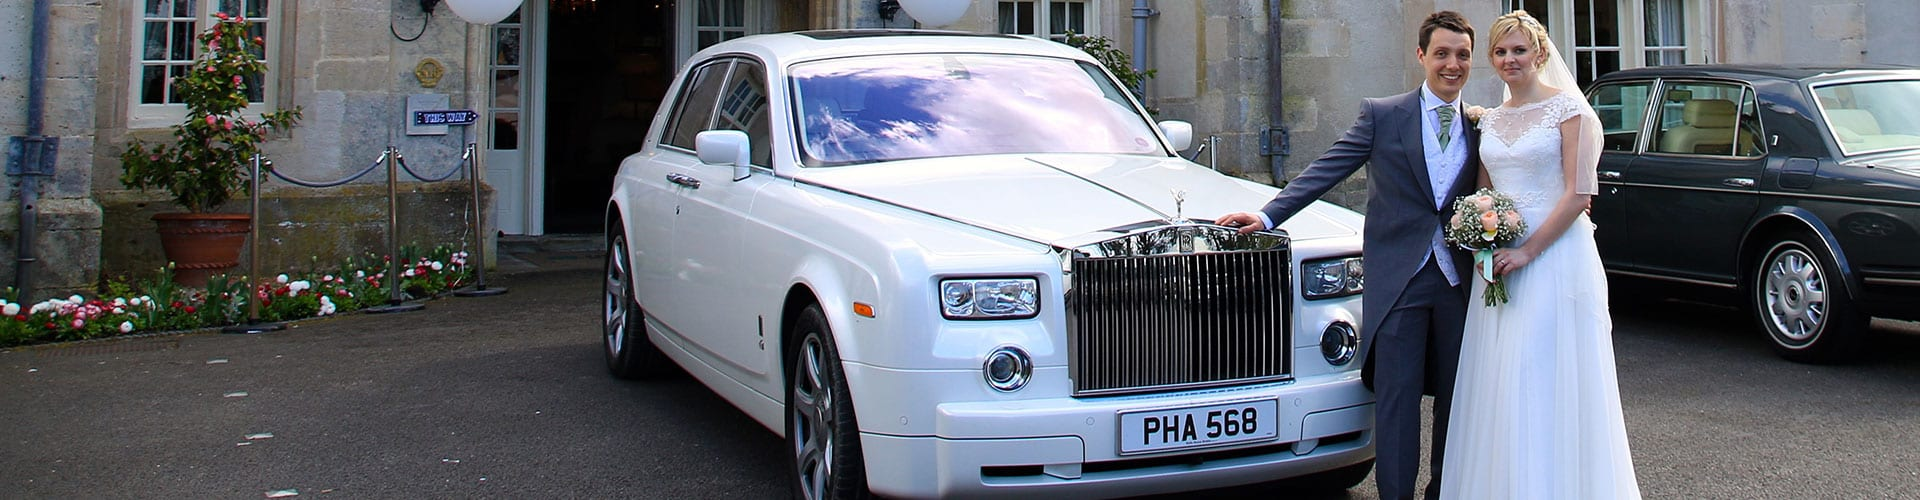 Rolls-Royce-Phantom-Hero-Slider-6